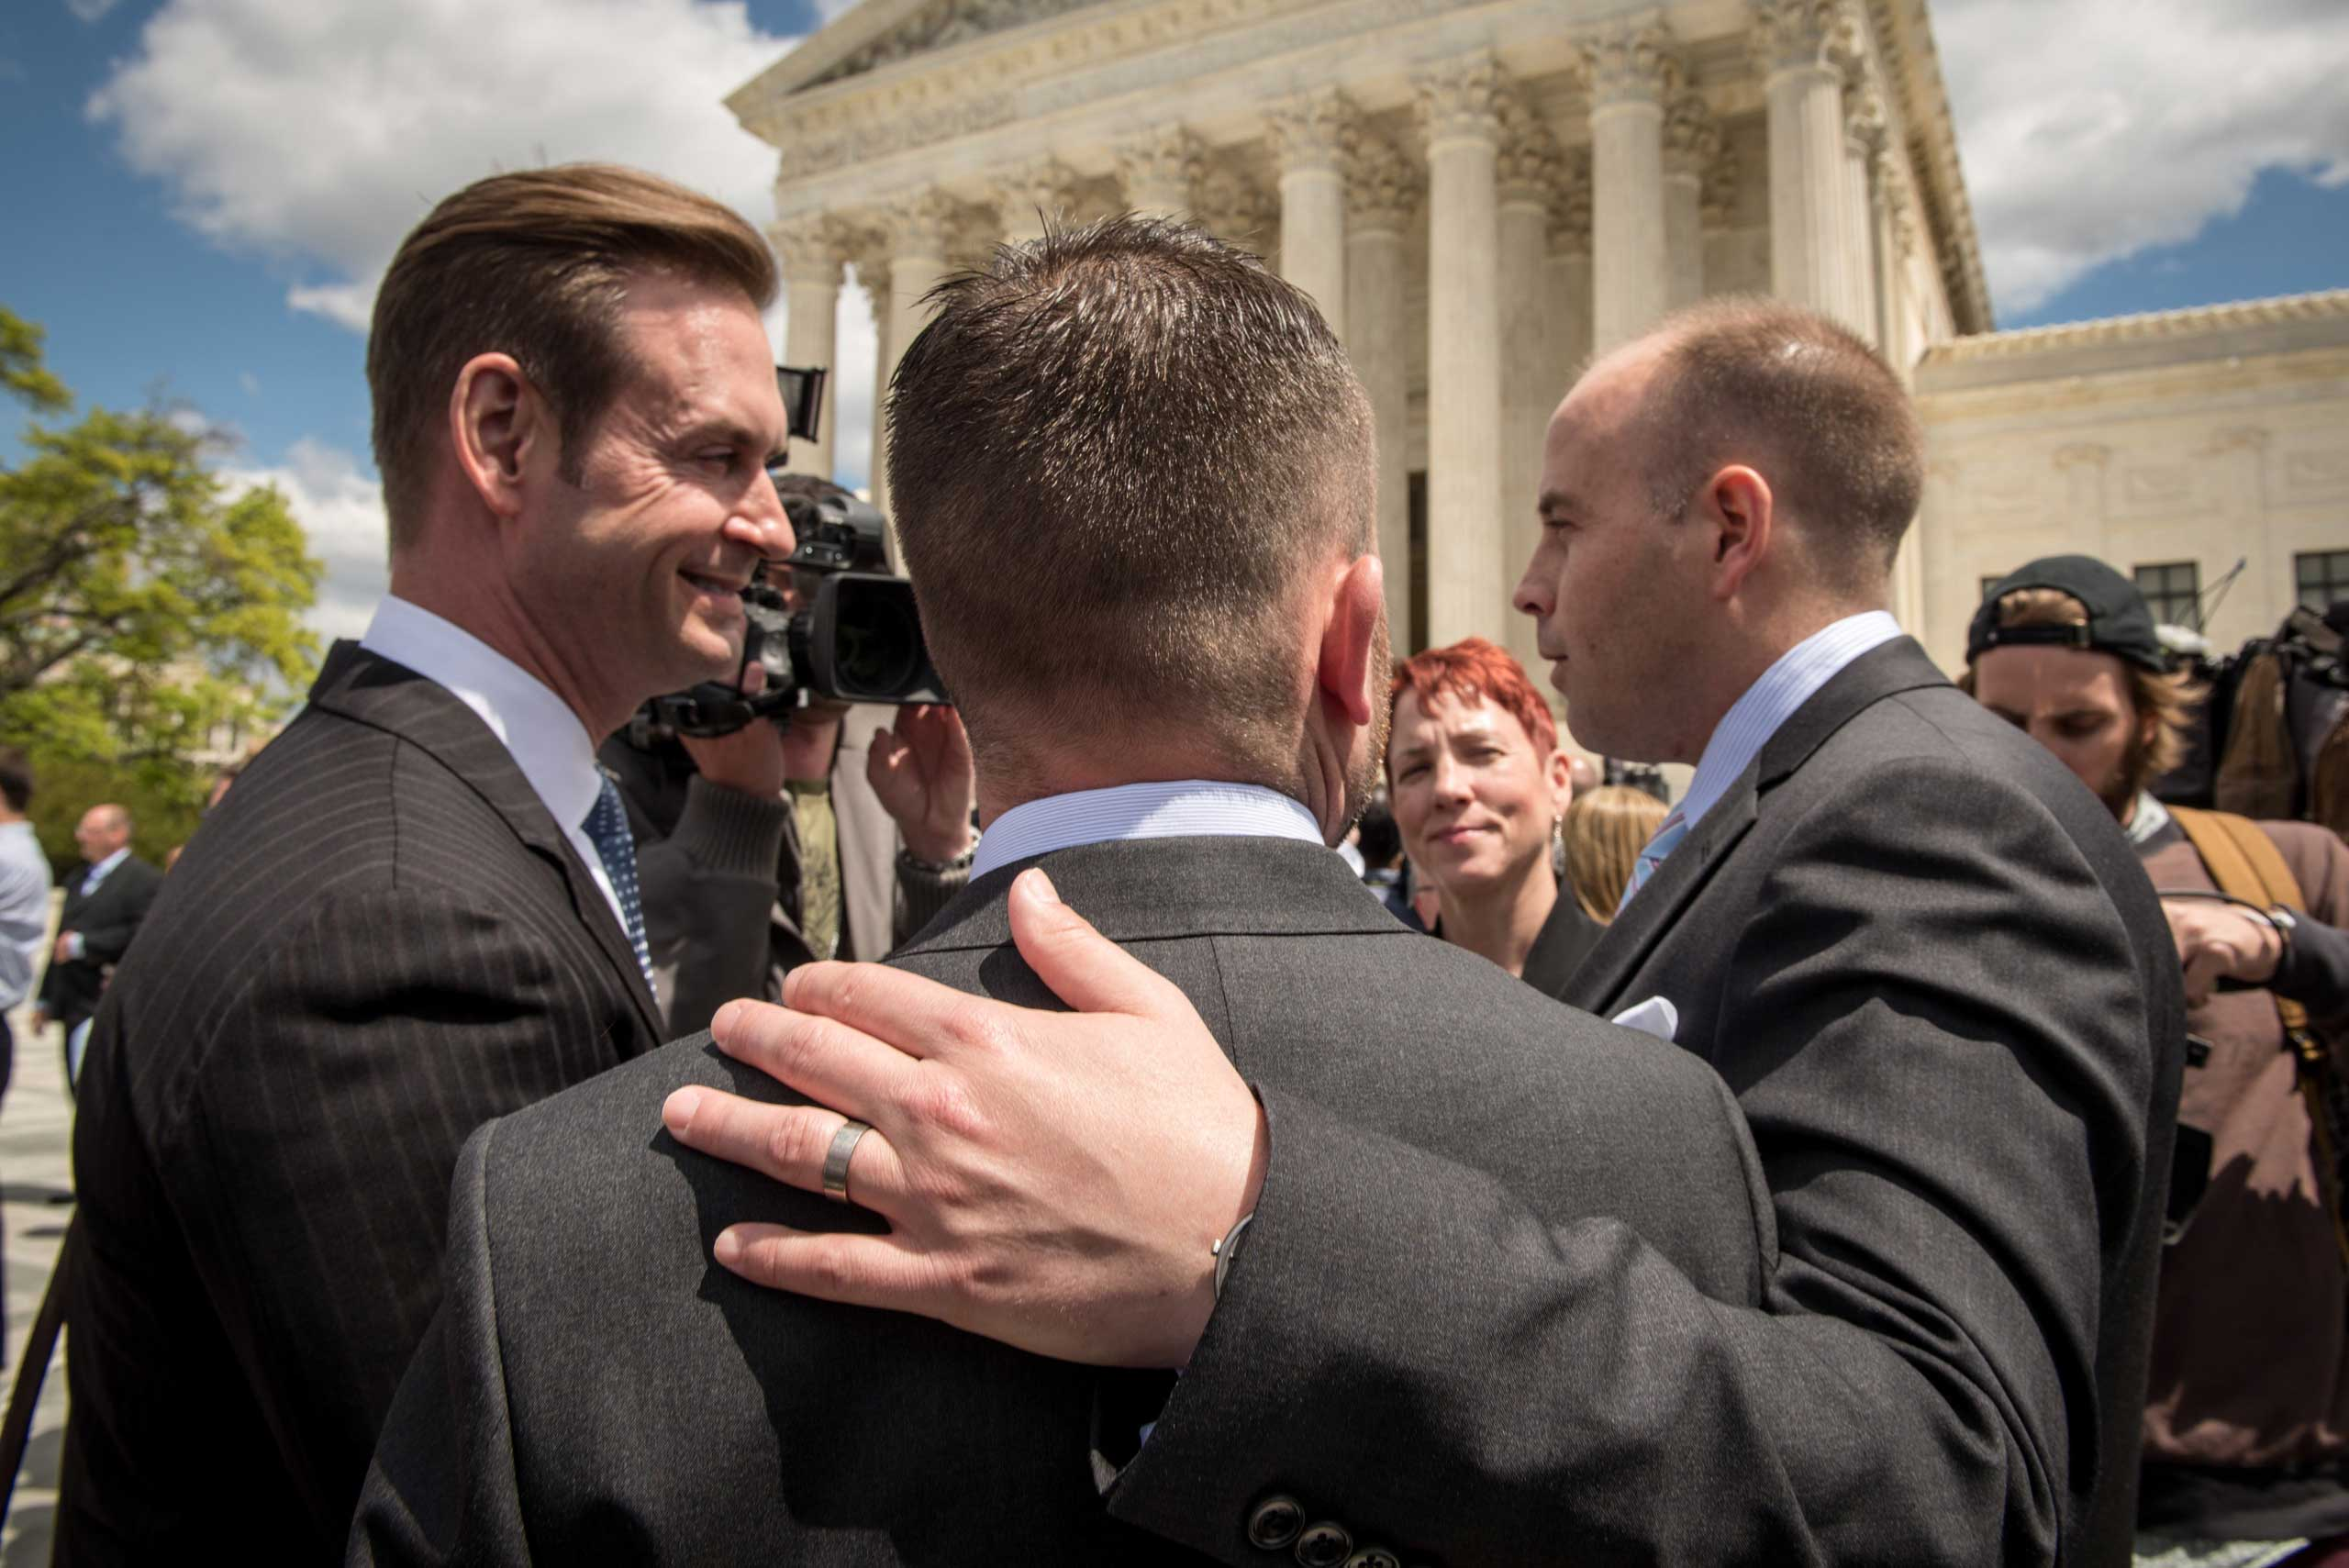 Plaintiffs Thomas Kostra, center and his husband Ijpe Dekoe, right, from Tennessee, speak with the media outside the Supreme Court of the United States following arguments on marriage equality in Washington on April 28, 2015.